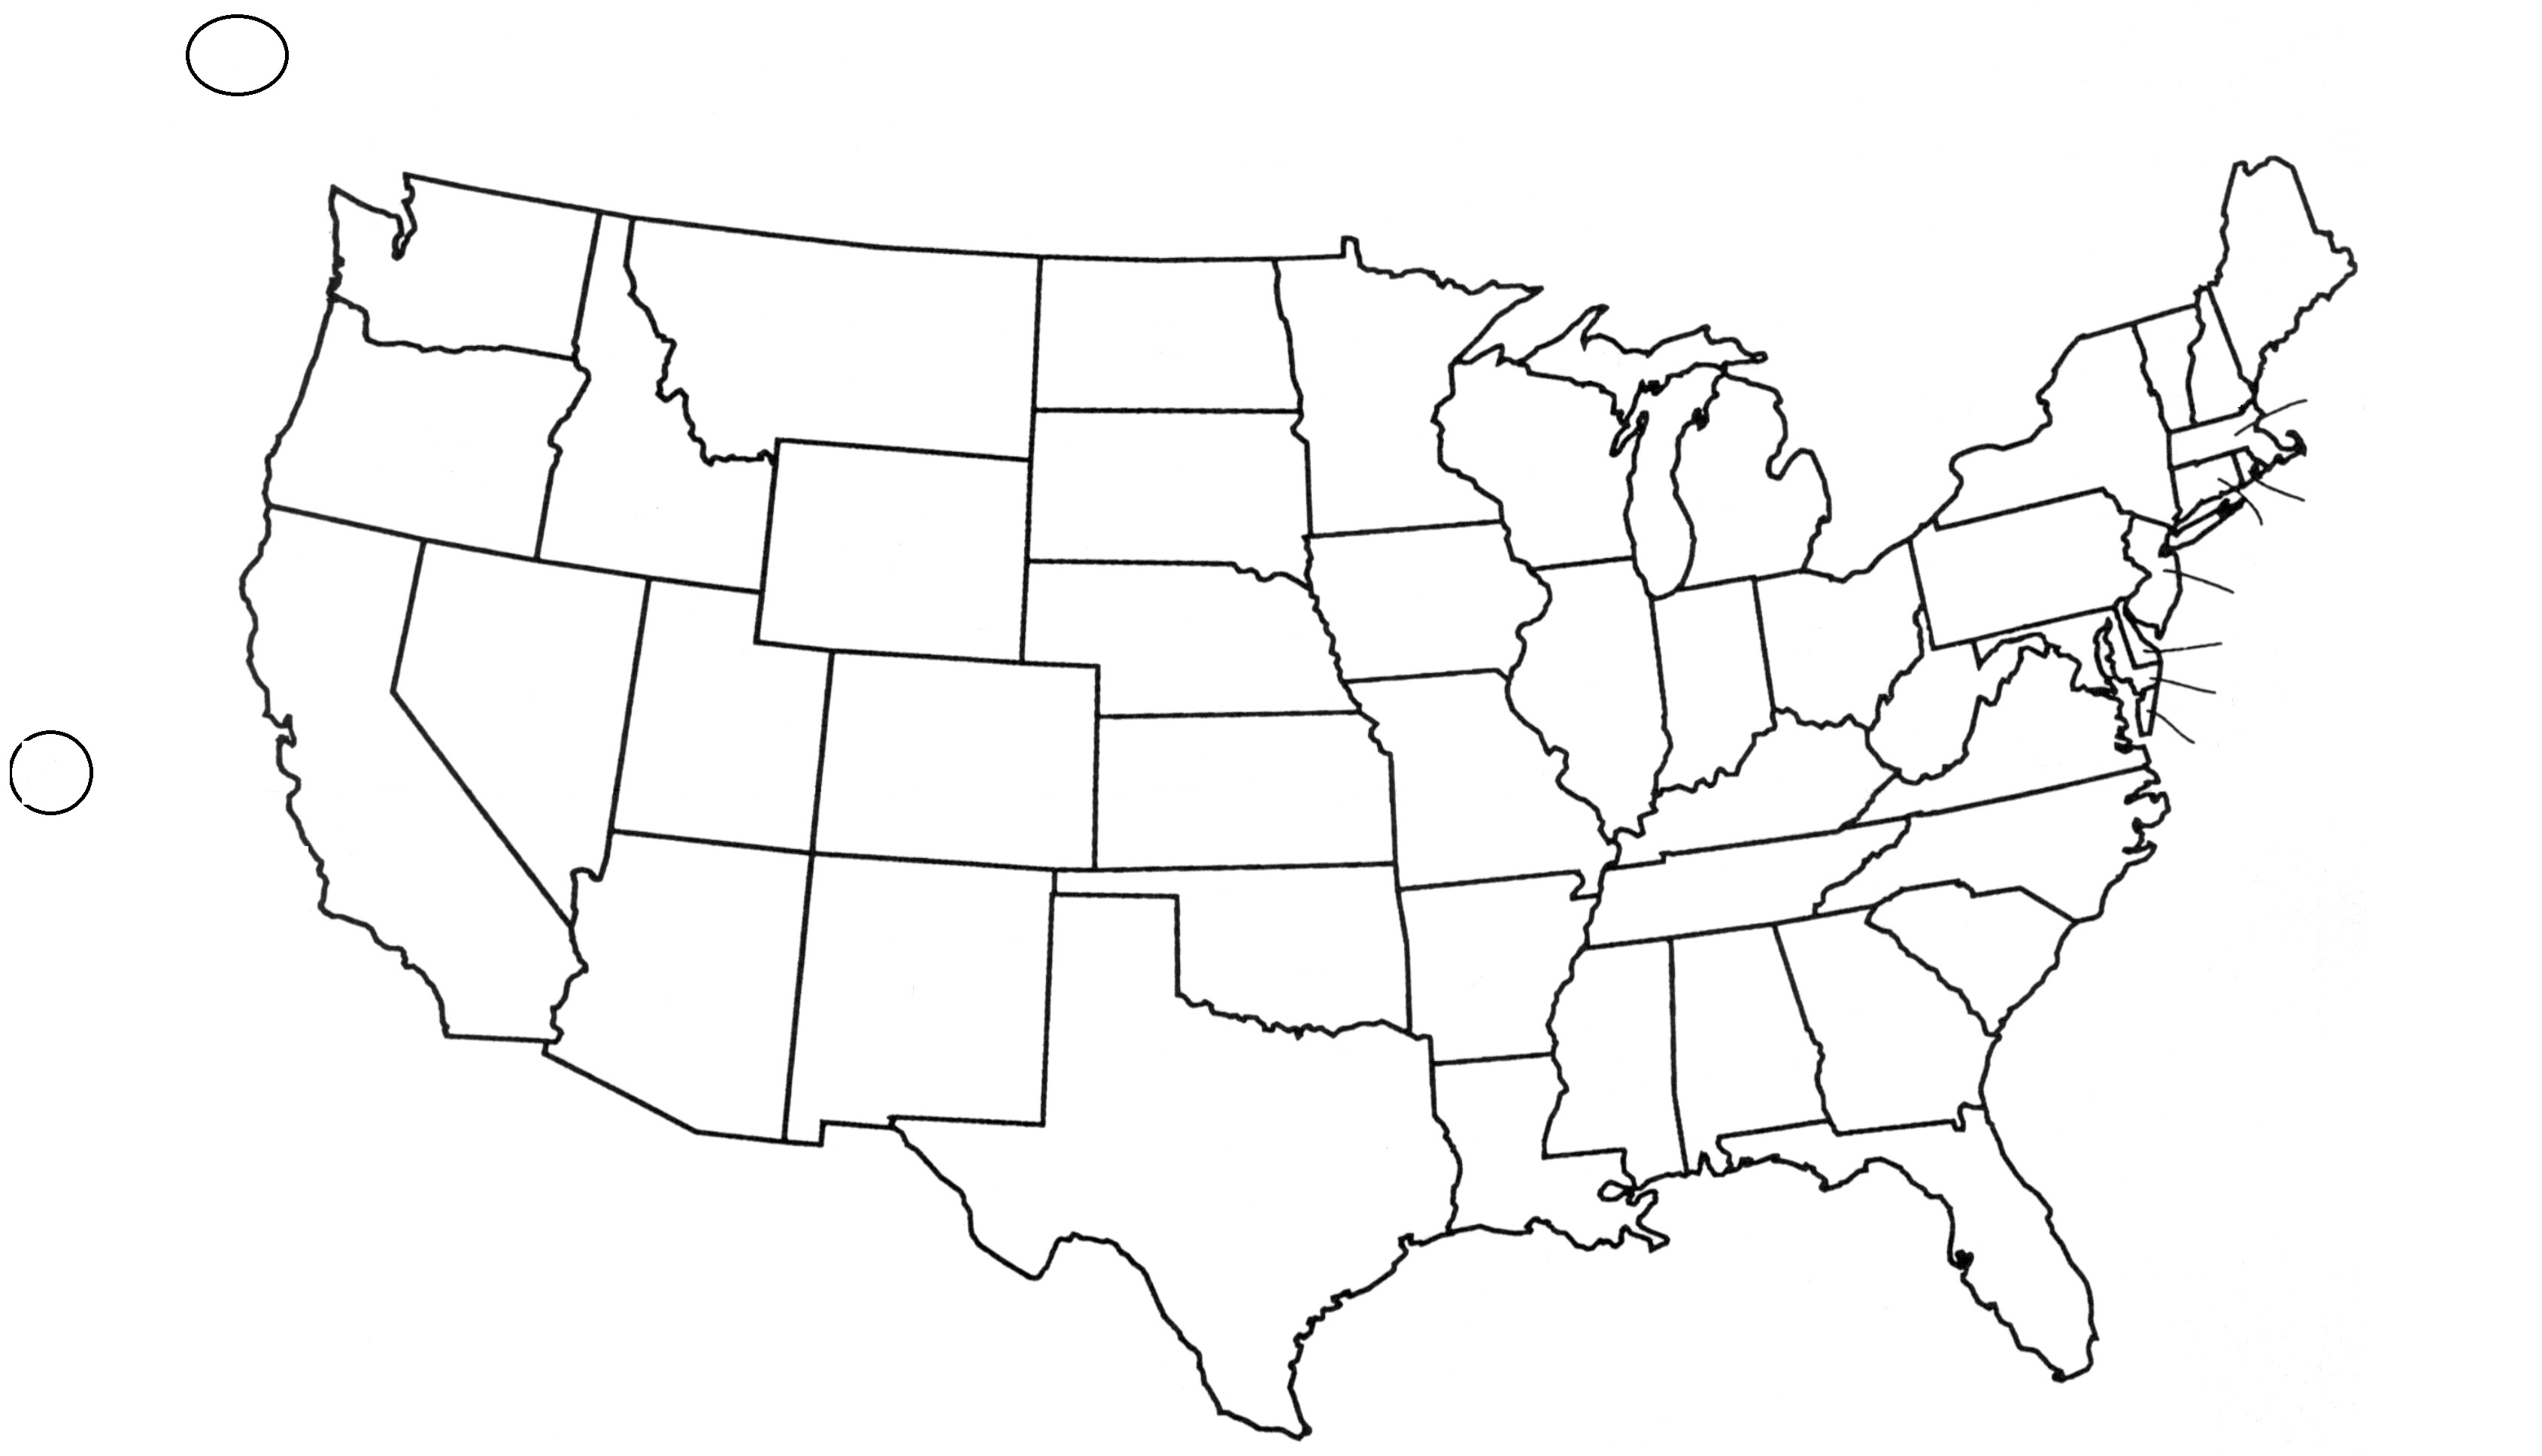 USA Map Free Vector In Acrobat Reader Pdf Pdf Vector Download - Free detailed map of us in pdf